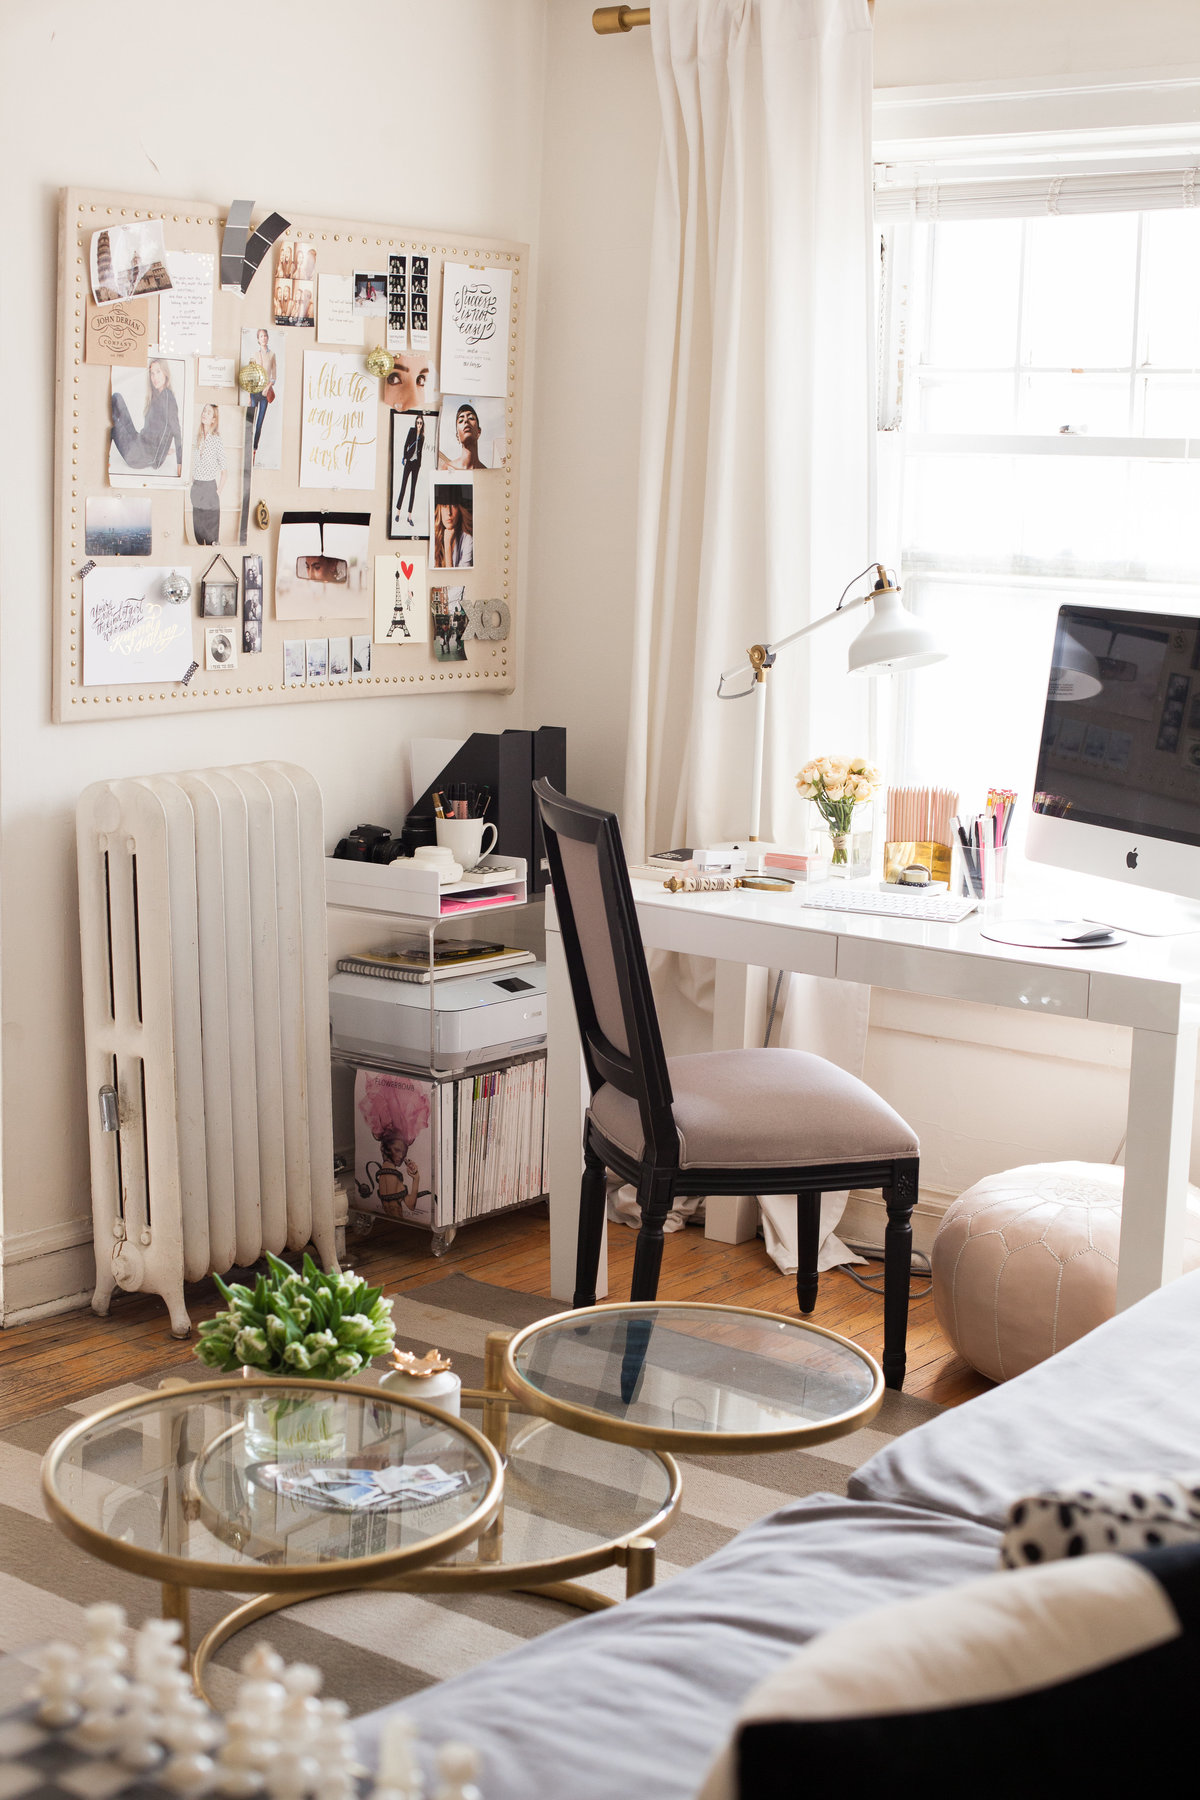 Alaina-Kaczmarksi-Home-Tour-The-Everygirl-33